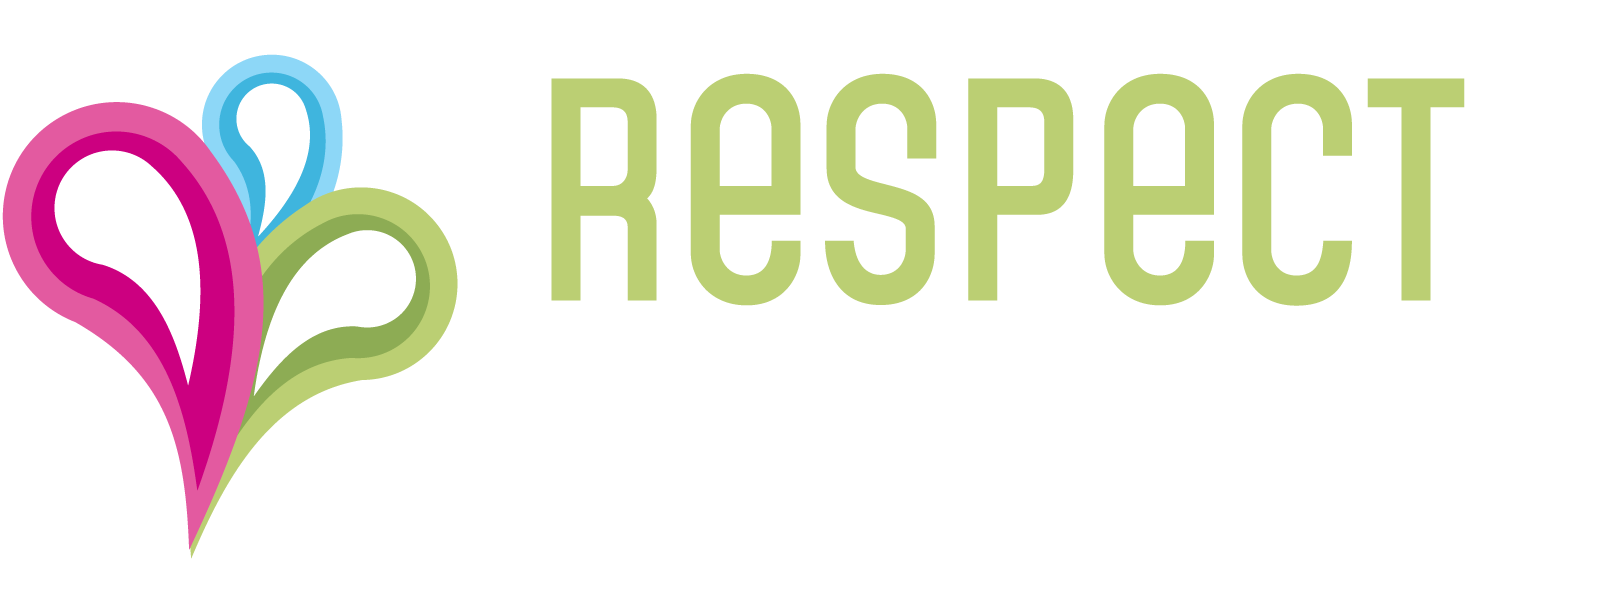 logo-respect-yourself-horizontal.png